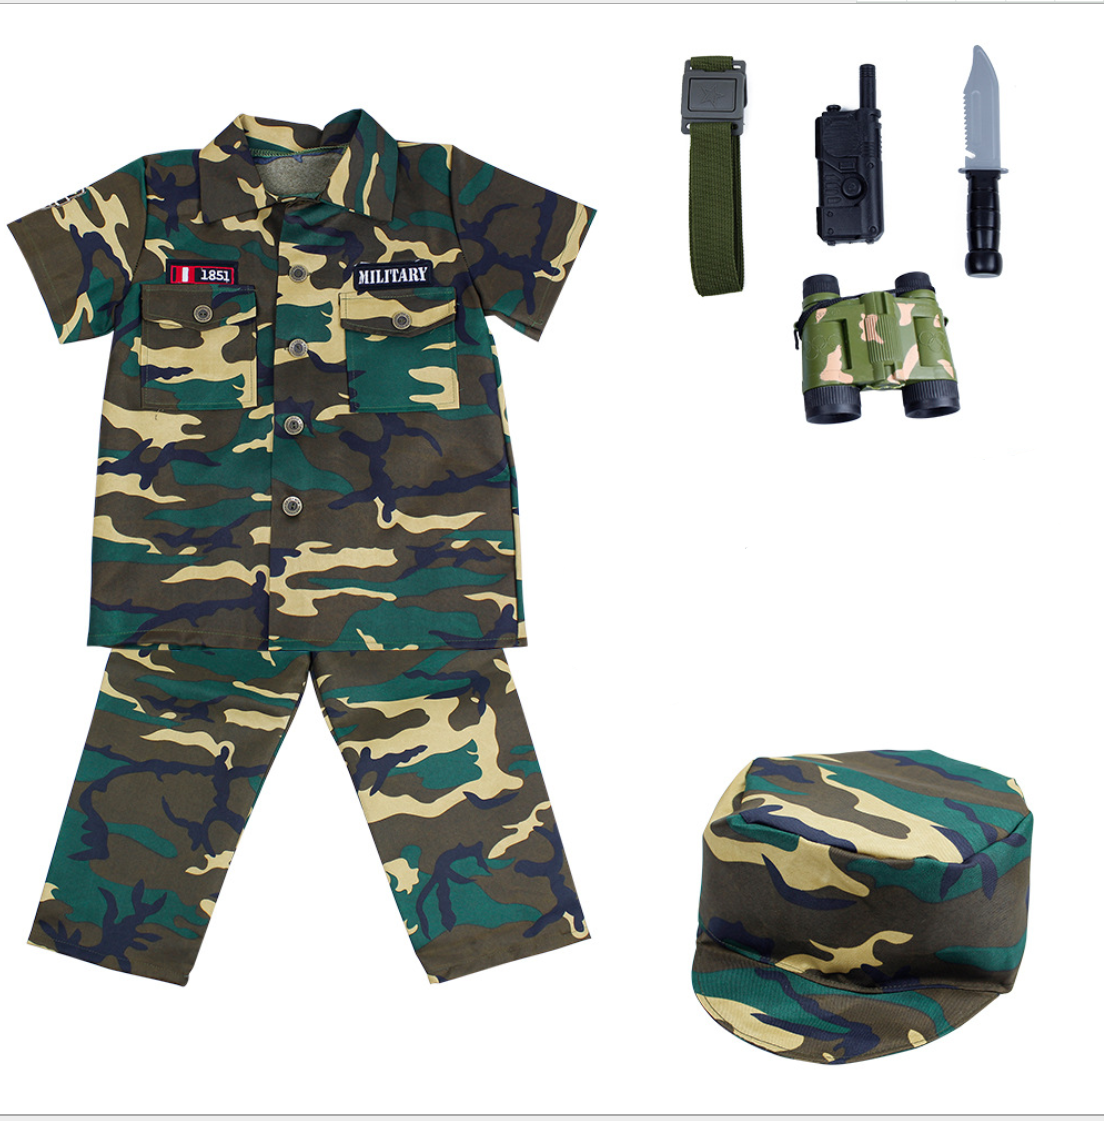 Custom army uniform kids costume with accessories wholesale military costume for kids